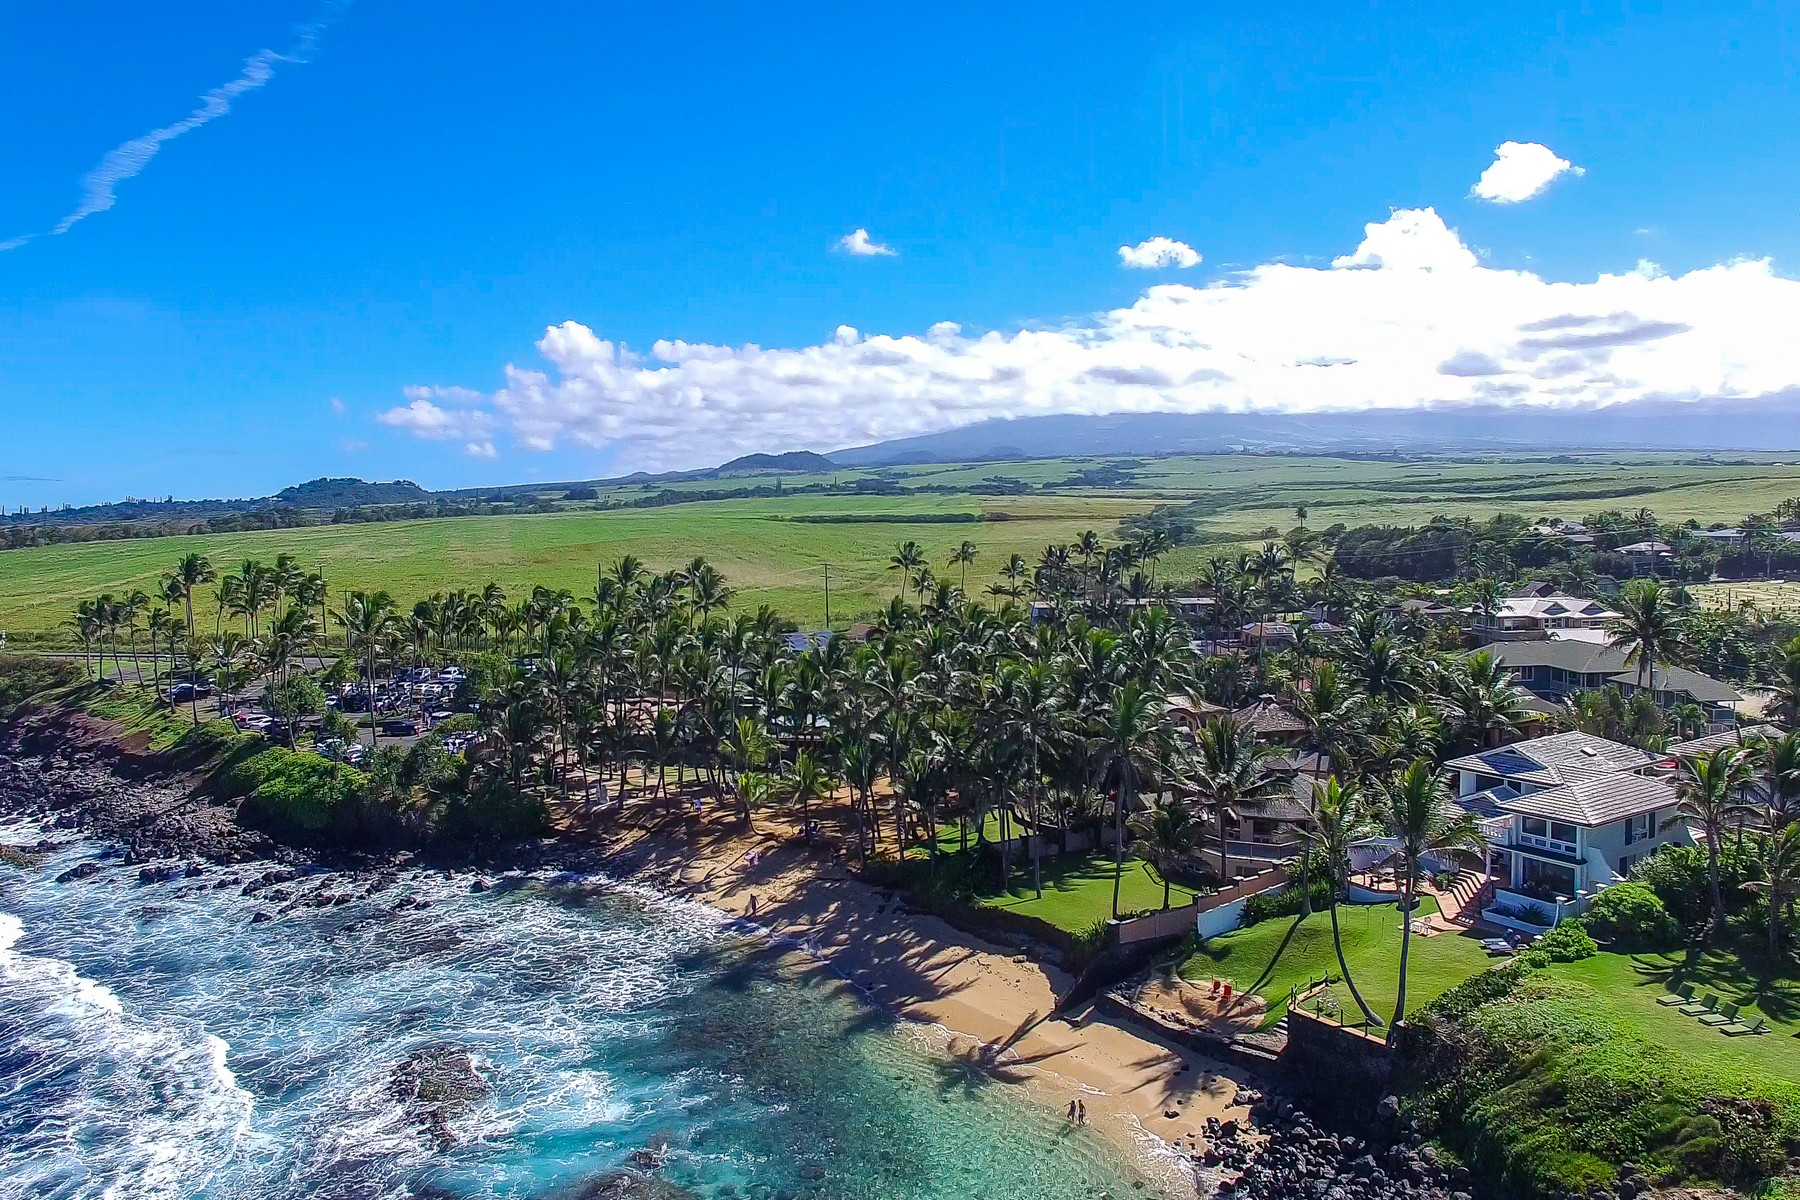 Property for Active at Maui Premier Ocean Front 131 Aleiki Place Paia, Hawaii 96779 United States